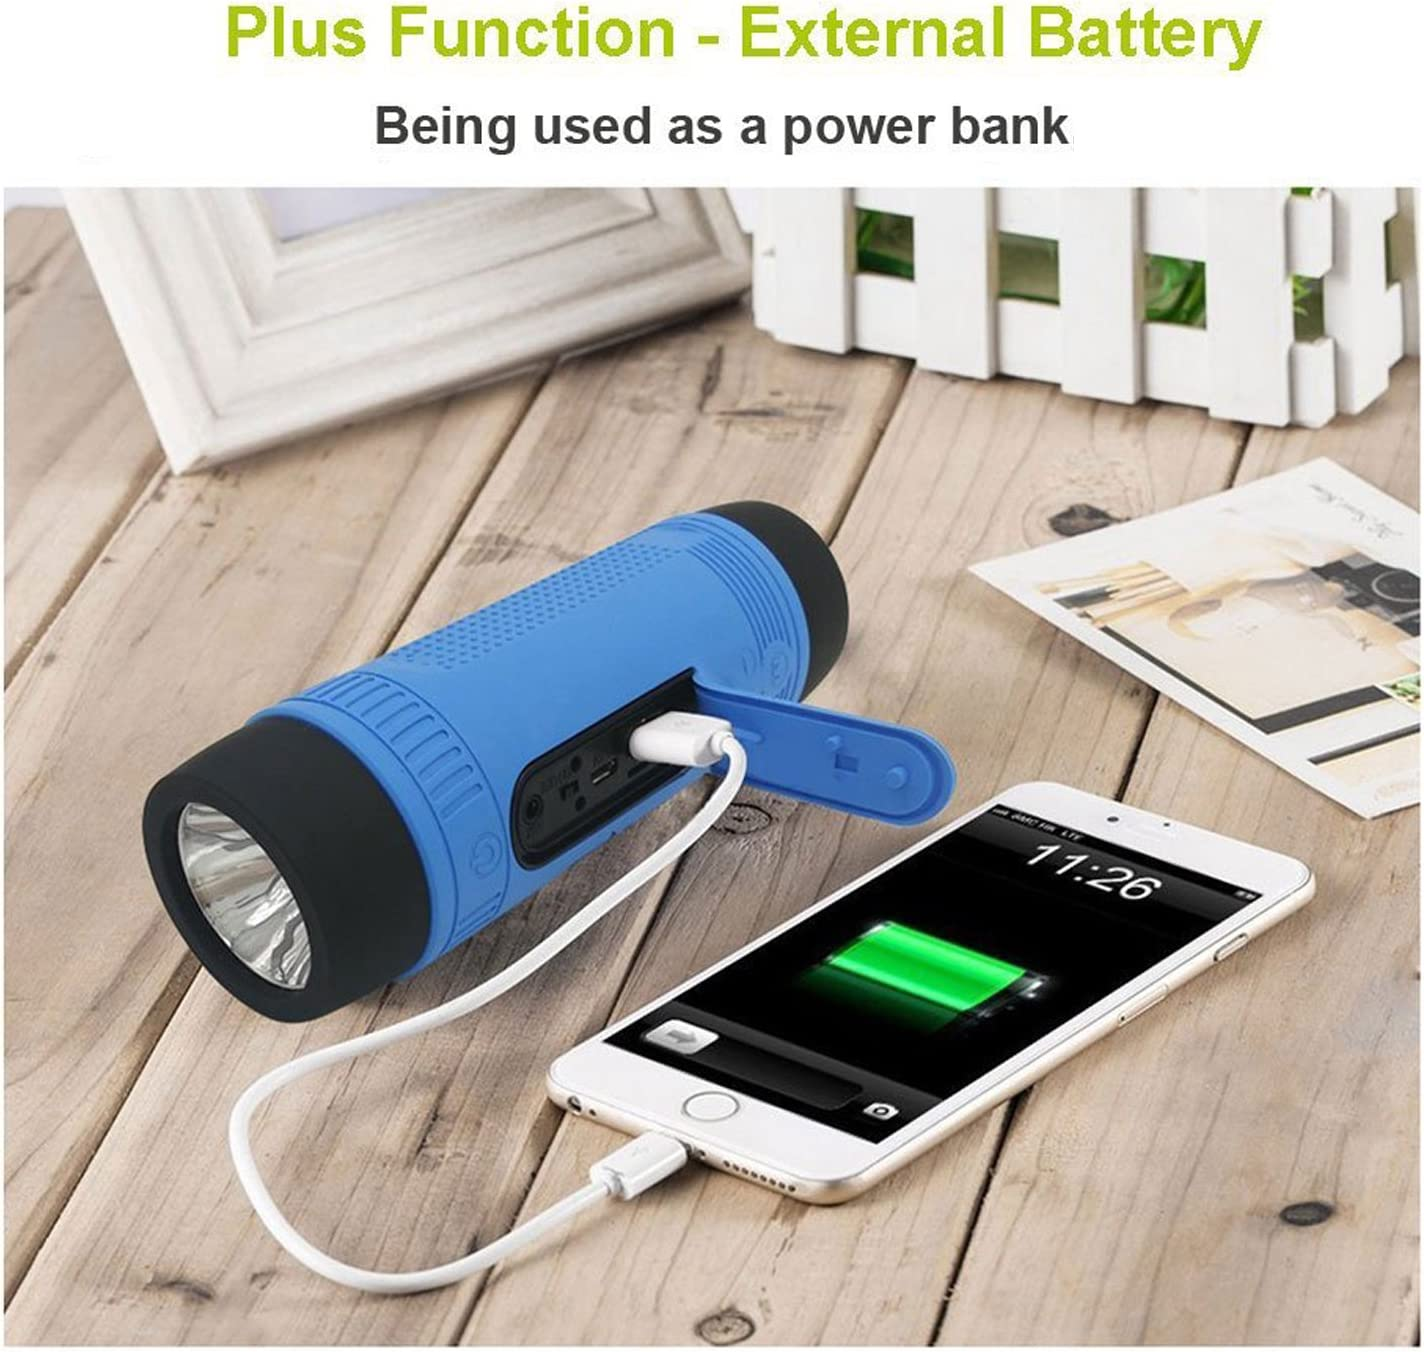 Blue Portable Multifuctional Wireless Bluetooth Speaker 4000mAh Rechargeable Power Bank 3 Mode Emergency Flashlight Handsfree Answering Phone Call TF Card Music Player Mounting Mracket Screw Hole